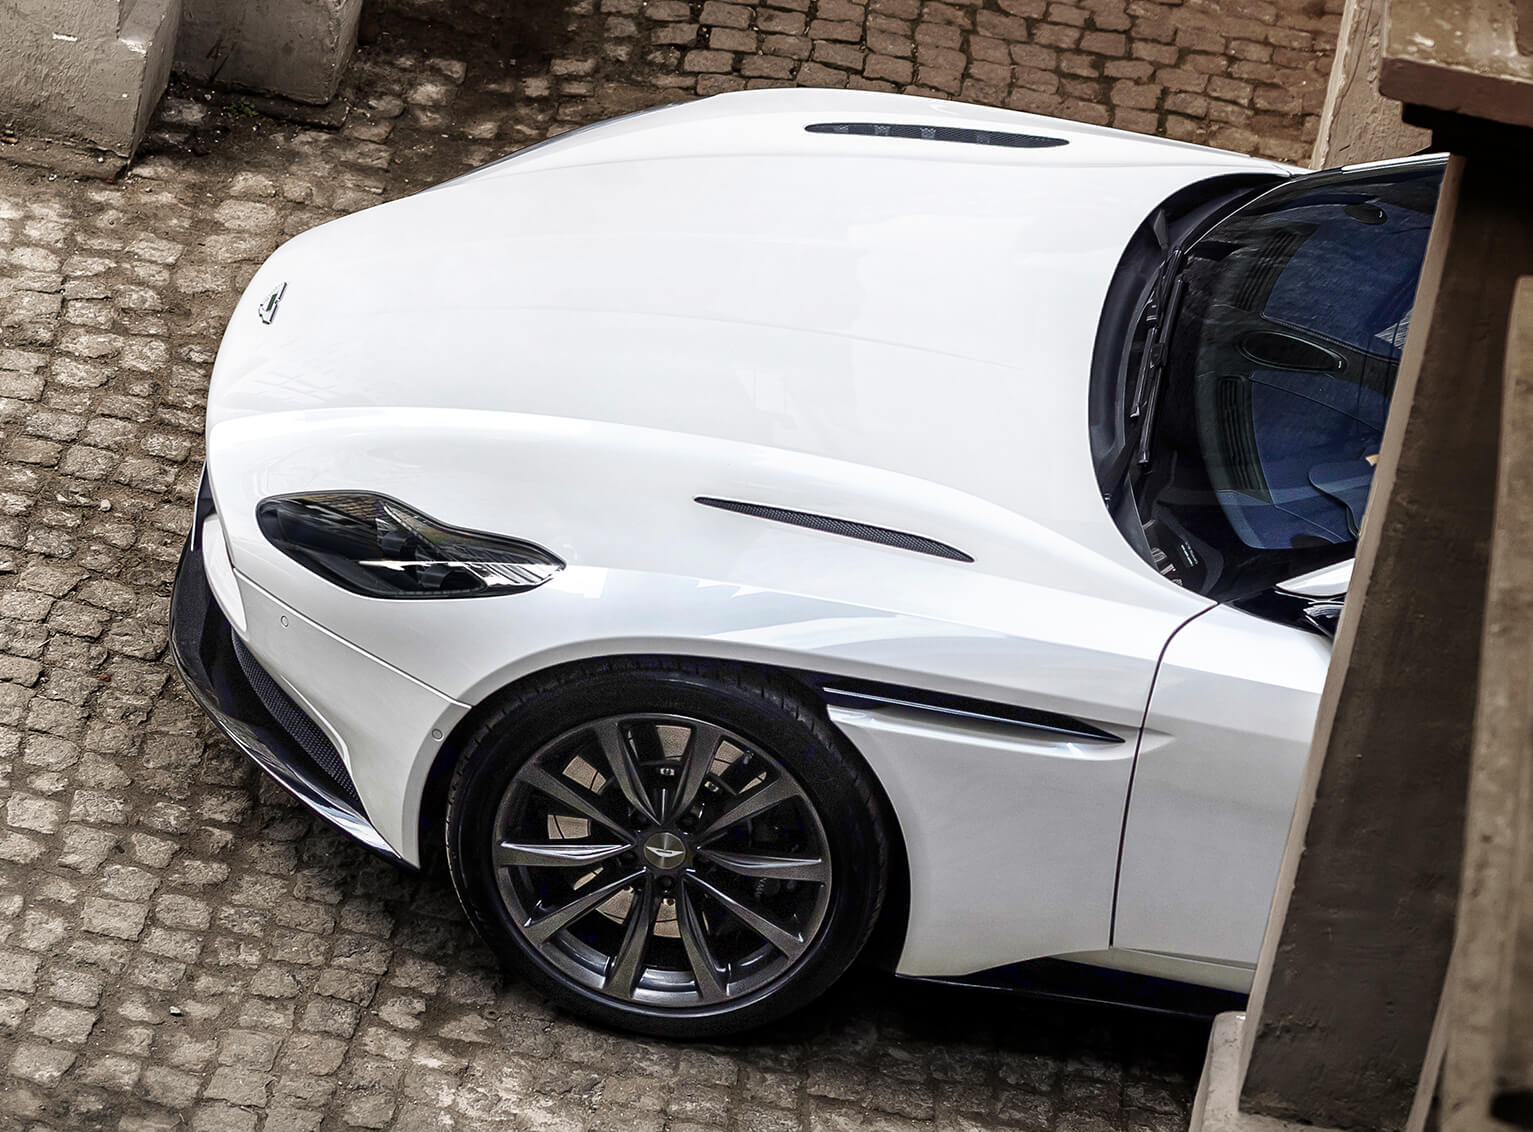 V8-Powered_DB11_12_4229.jpg